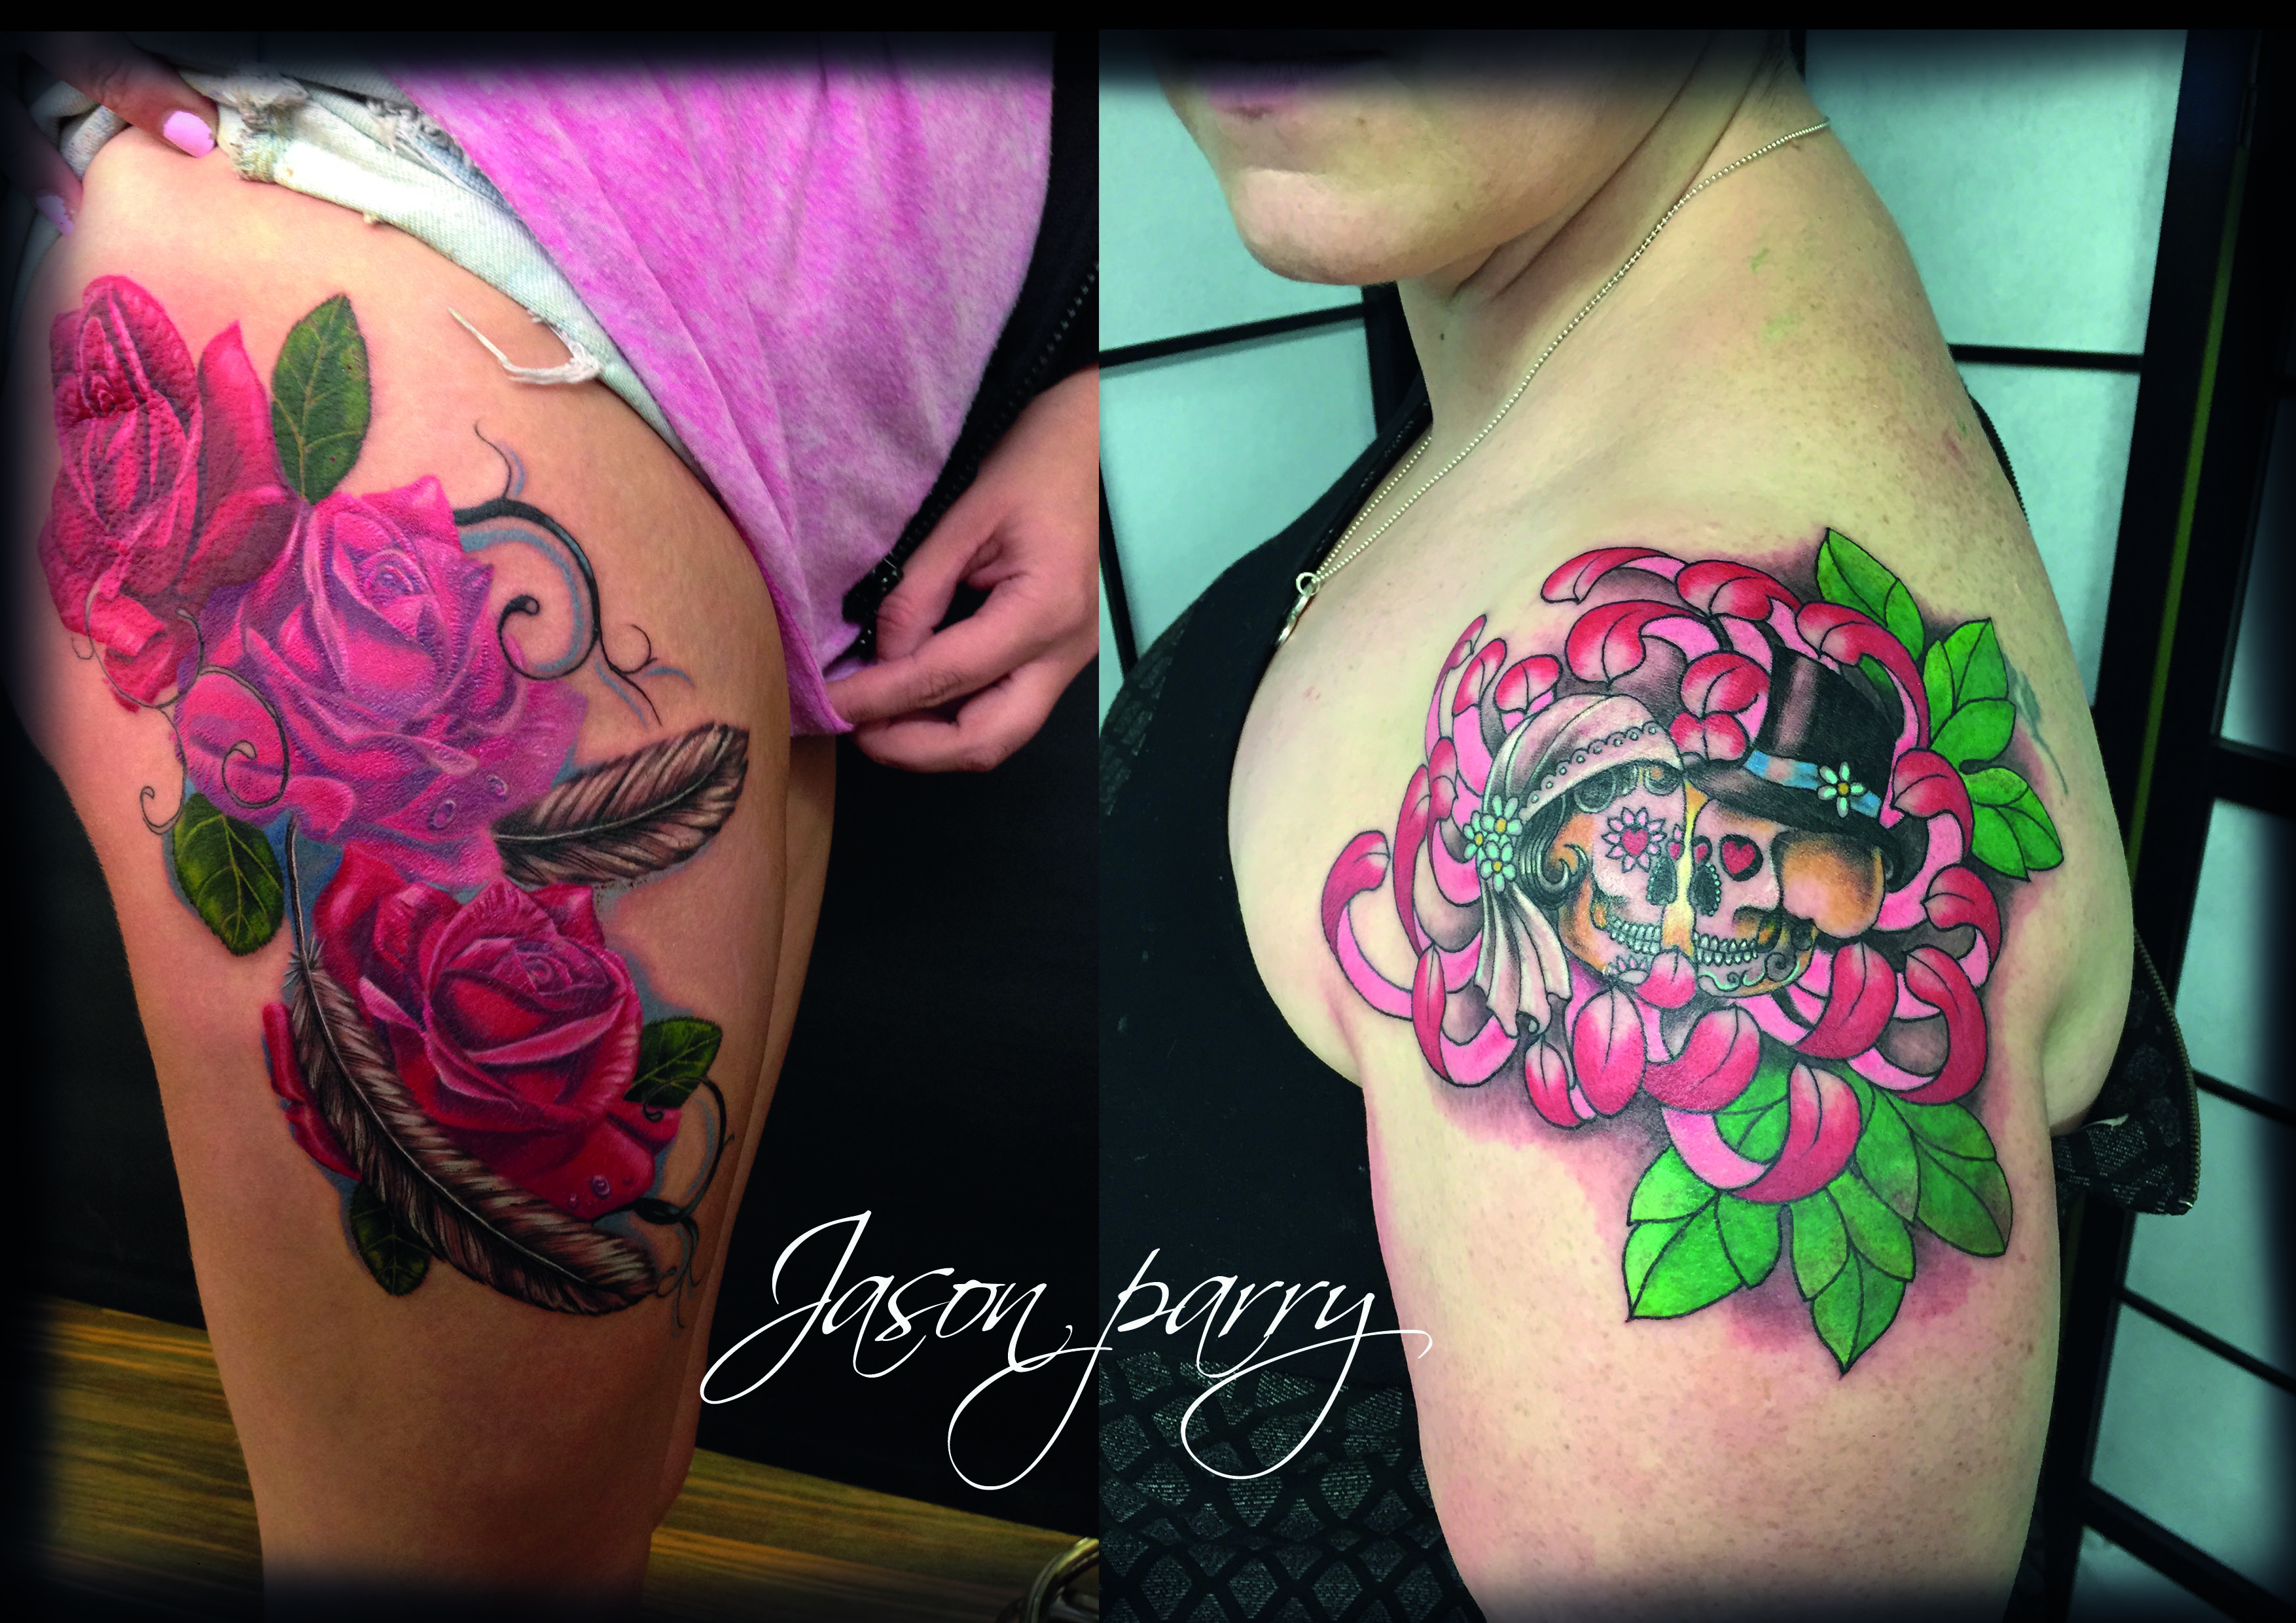 chrysanthemum and roses tattoo jason parry.jpg